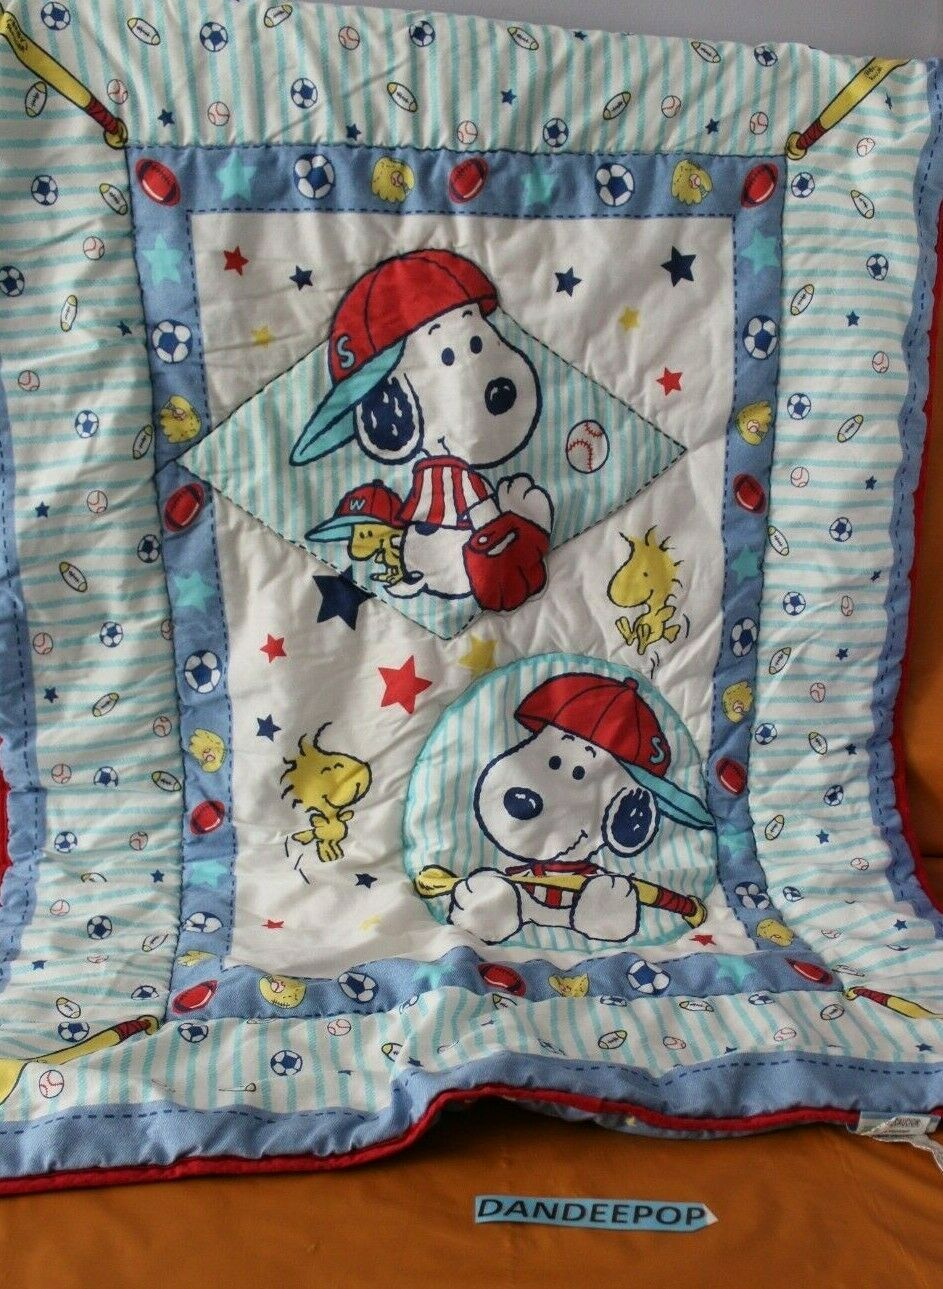 Primary image for Lambs & Ivy Baby Little Snoopy Woodstock Crib Blanket Comforter 35 x 44